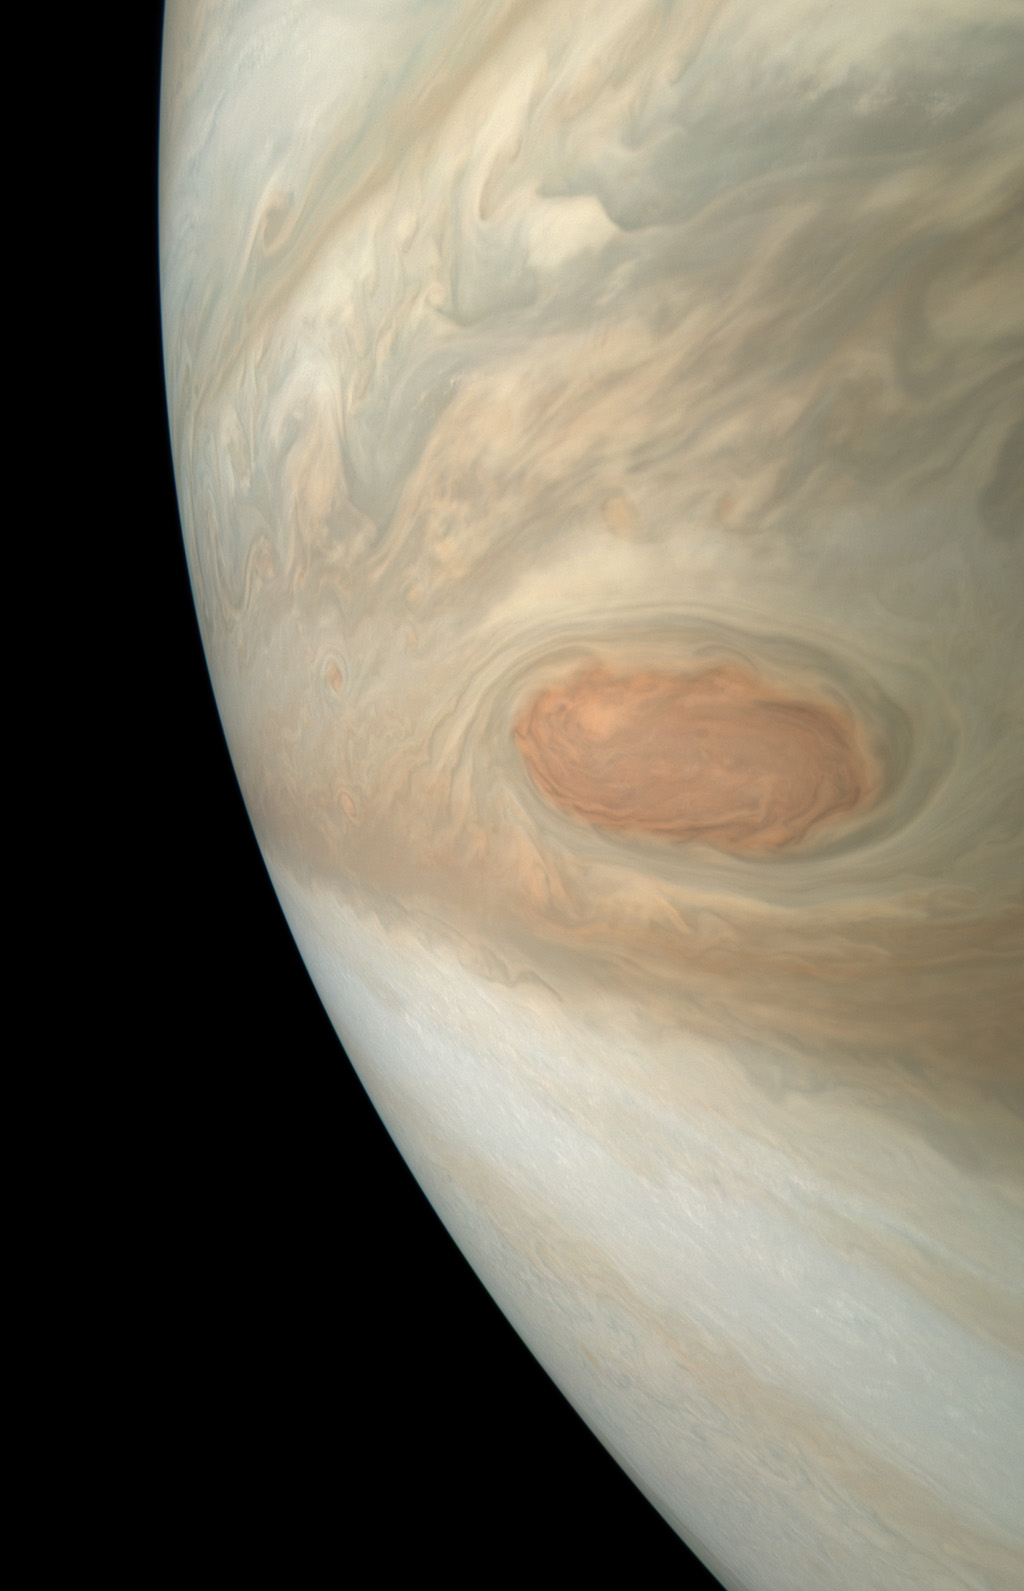 A swirling storm somersaults through Jupiter's South Equatorial Belt in this view taken by NASA's Juno spacecraft. This feature is not to be confused with the planet's iconic Great Red Spot.